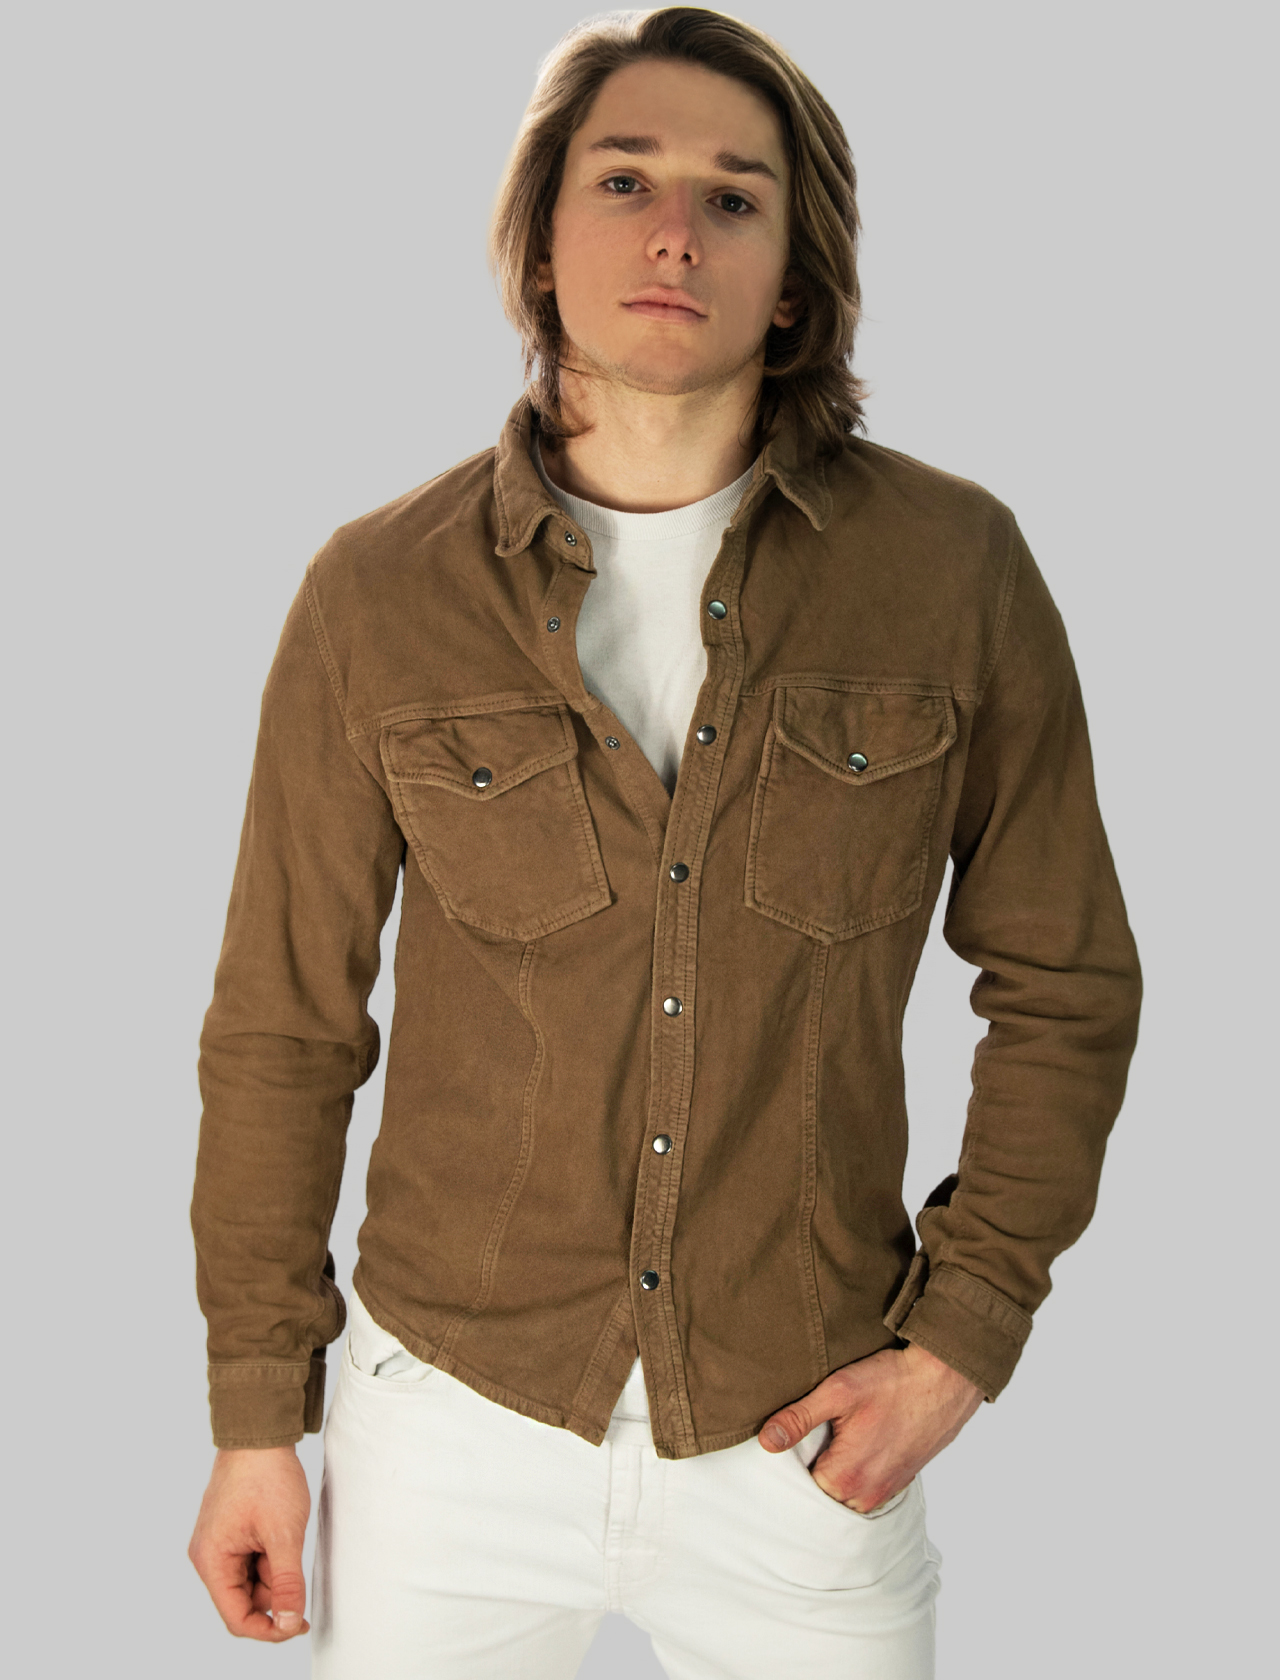 Men's Clothing Taupe Suede Shirt with Snap Buttons Minoronzoni |  | MRS214J203023